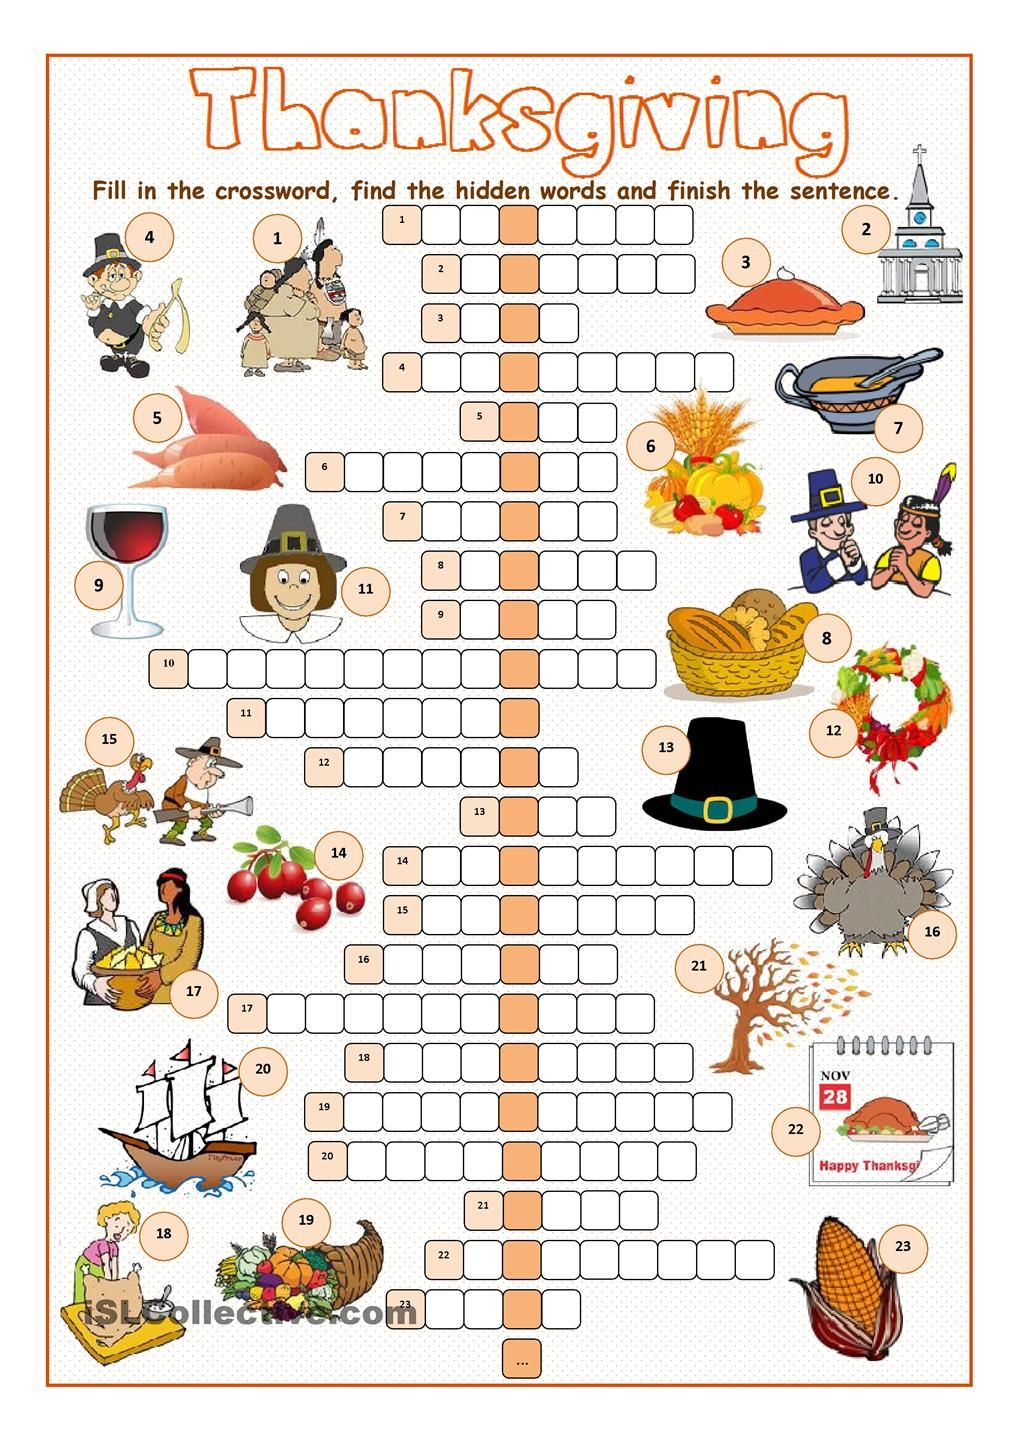 Thanksgiving Crossword Puzzle … | Puzzles | Thank… - Thanksgiving Crossword Puzzle Printable